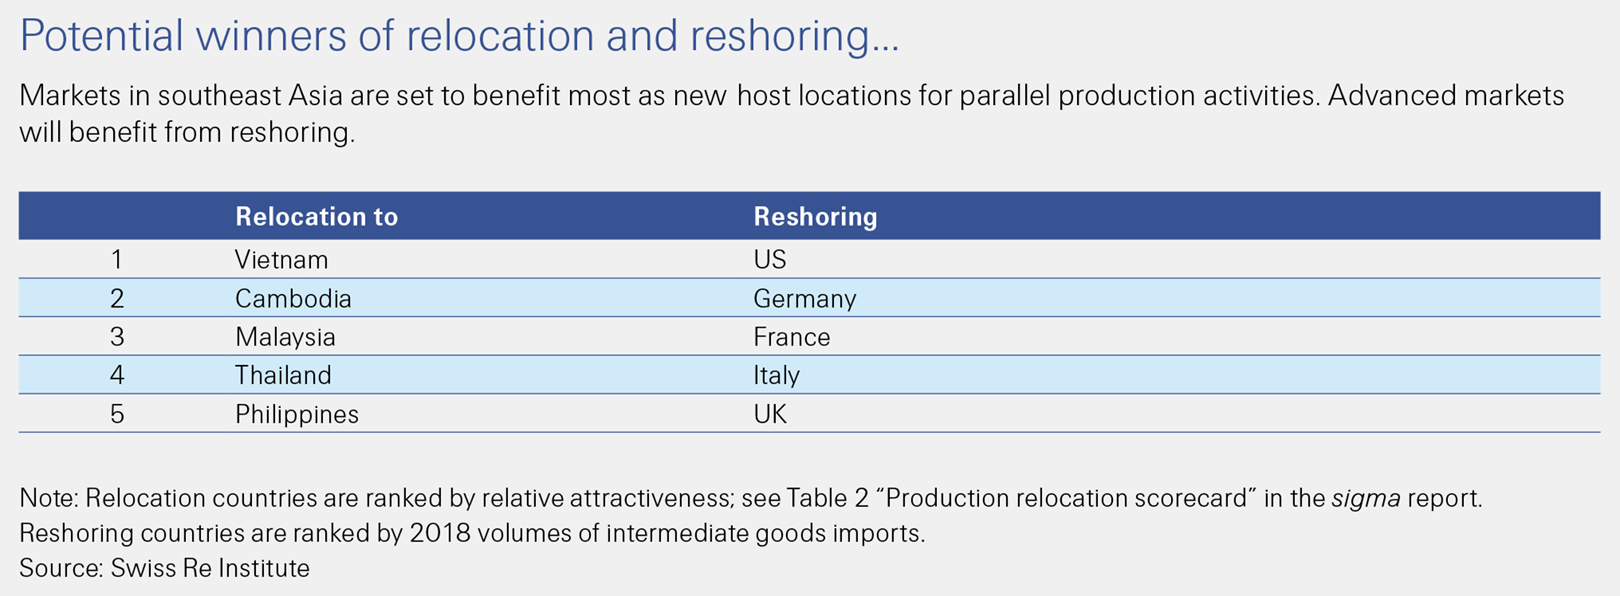 This Swiss Re Institute sigma 6/2020 figure shows the potential winners of relocation and reshoring.